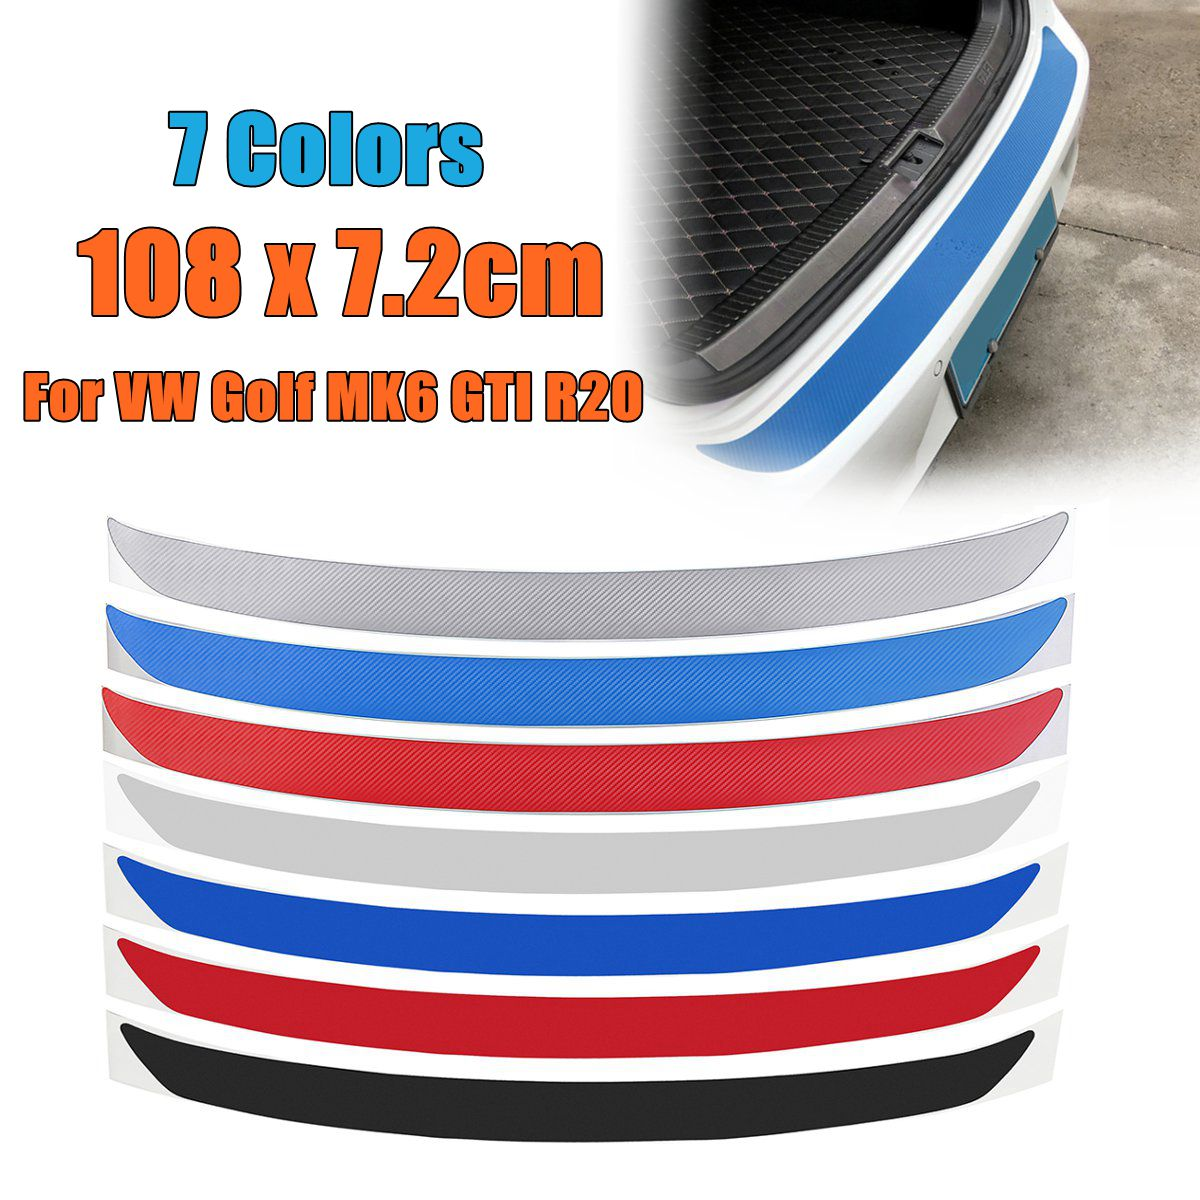 1Pc Carbon Fiber Rear Bumper Protector Sticker Trim 7 Colors For VW Golf MK6 GTI R20 Car-Styling Sticker And Decals 108x7.2cm cool scorpion design die out vinyl sticker on car for vw polo golf mazda and so on fashion car side door decals labels